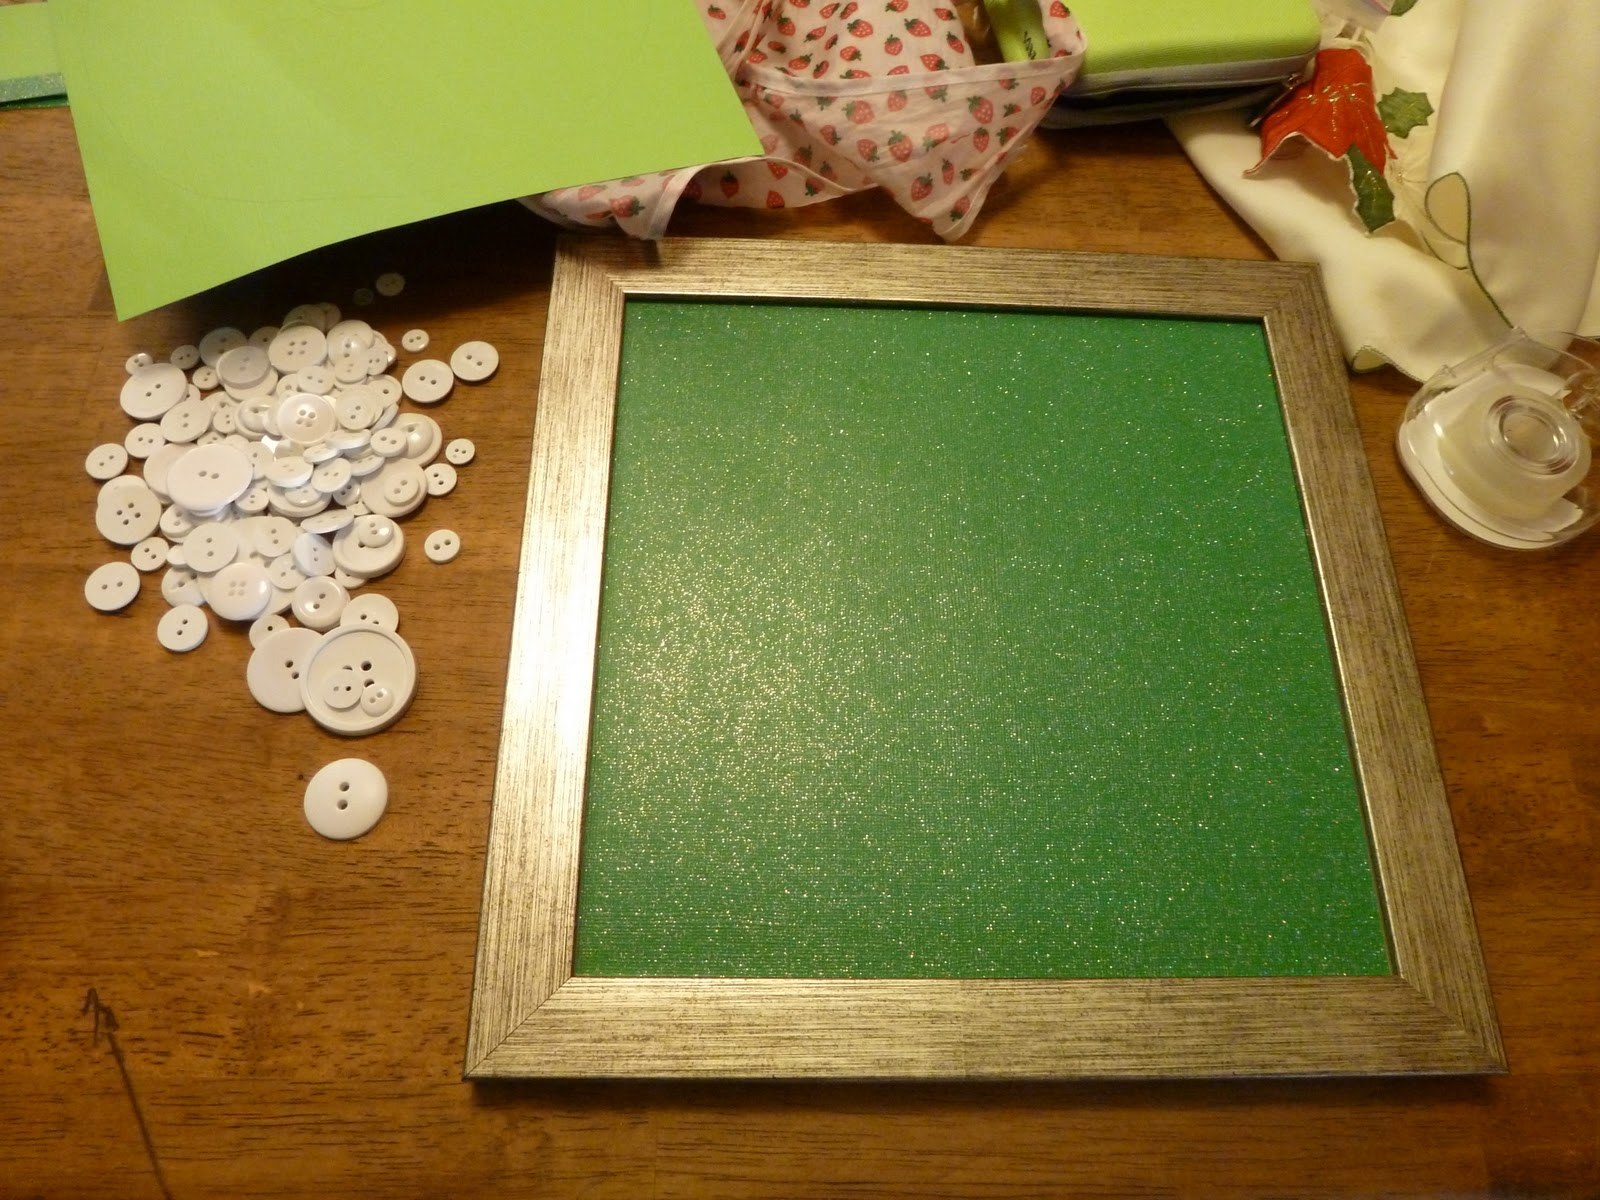 Just learning how to make a house a home button wreath first 2nd i cut the paper after a few samples from some extra light green paper i only had one glittery paper and needed to make it perfect jeuxipadfo Image collections